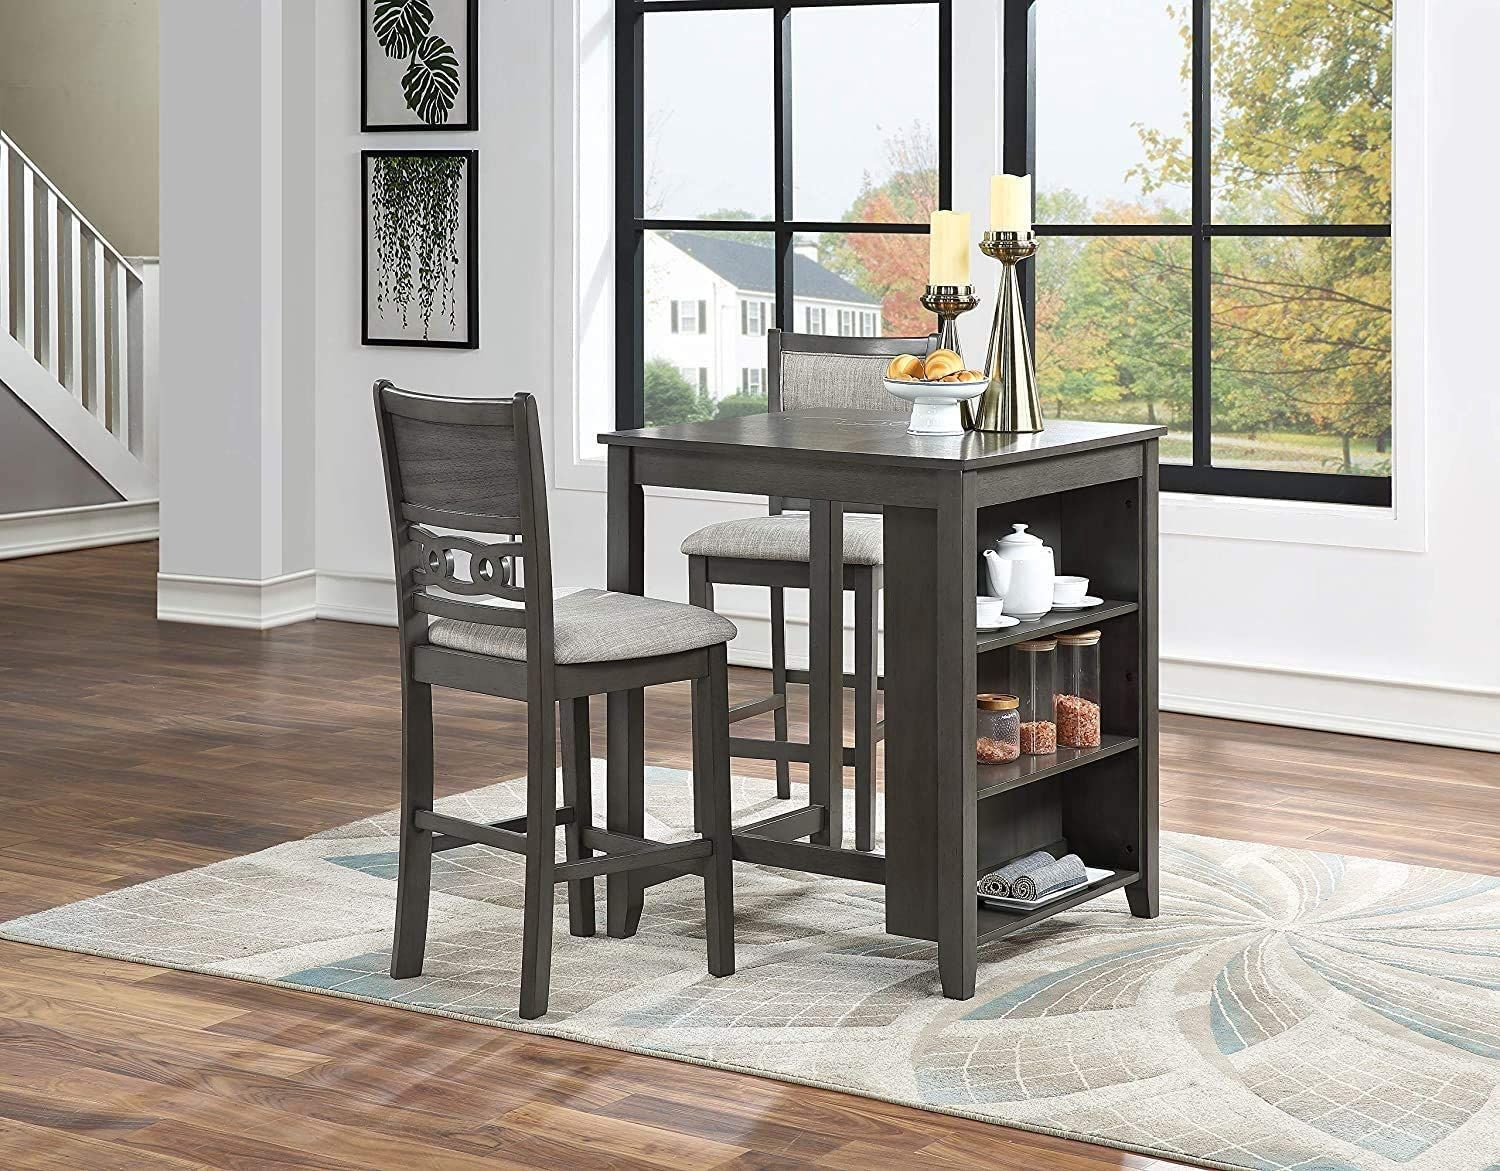 2 Chair Counter Height Dinette Table With Storage In 2021 New Classic Furniture Dining Room Bar Dining Room Sets Dining room sets for 2